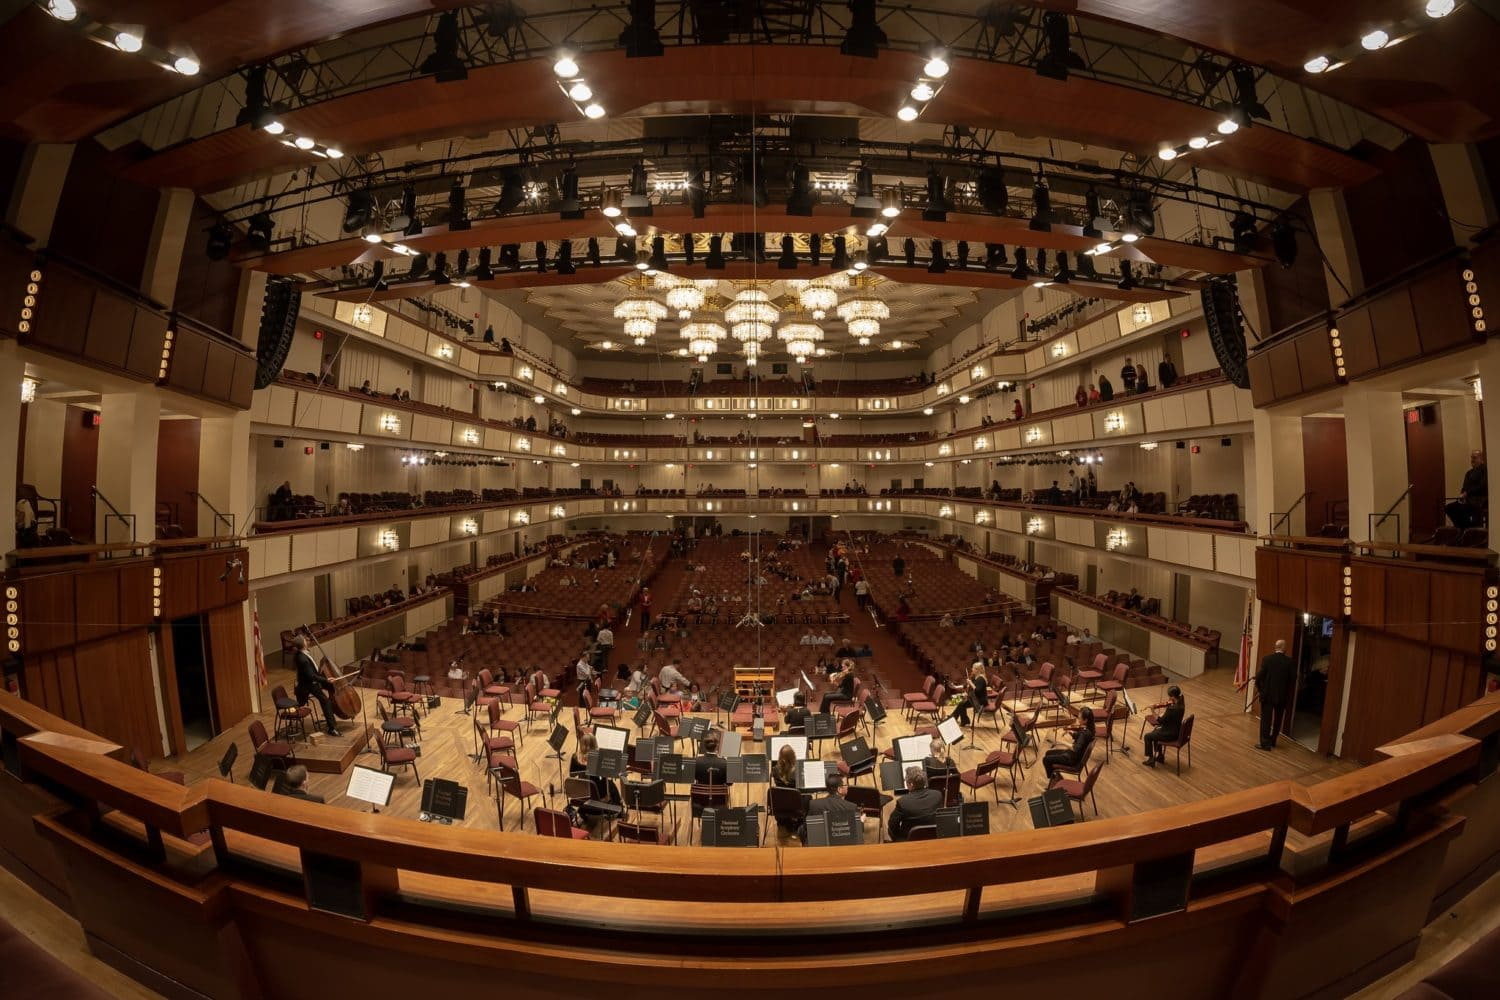 The NSO rehearses at The John F. Kennedy Center for the Performing Arts